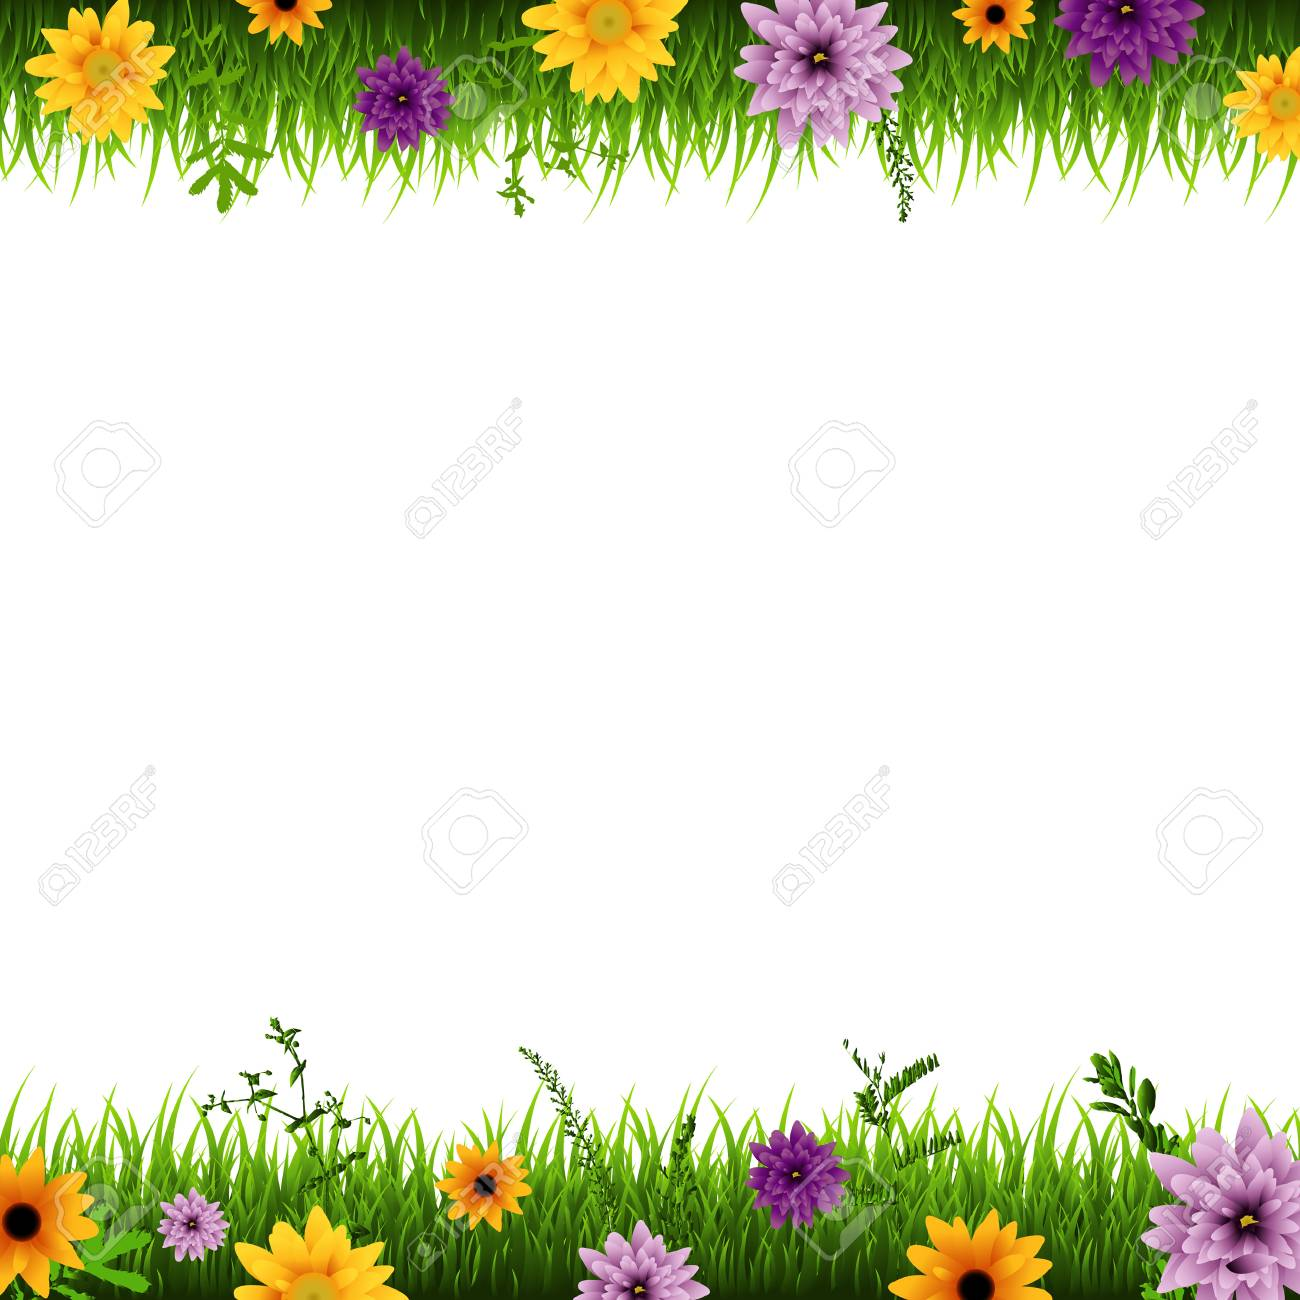 grass and flowers border.  Flowers Grass And Flowers Border Vector Illustration Stock  94943113 Throughout Border I